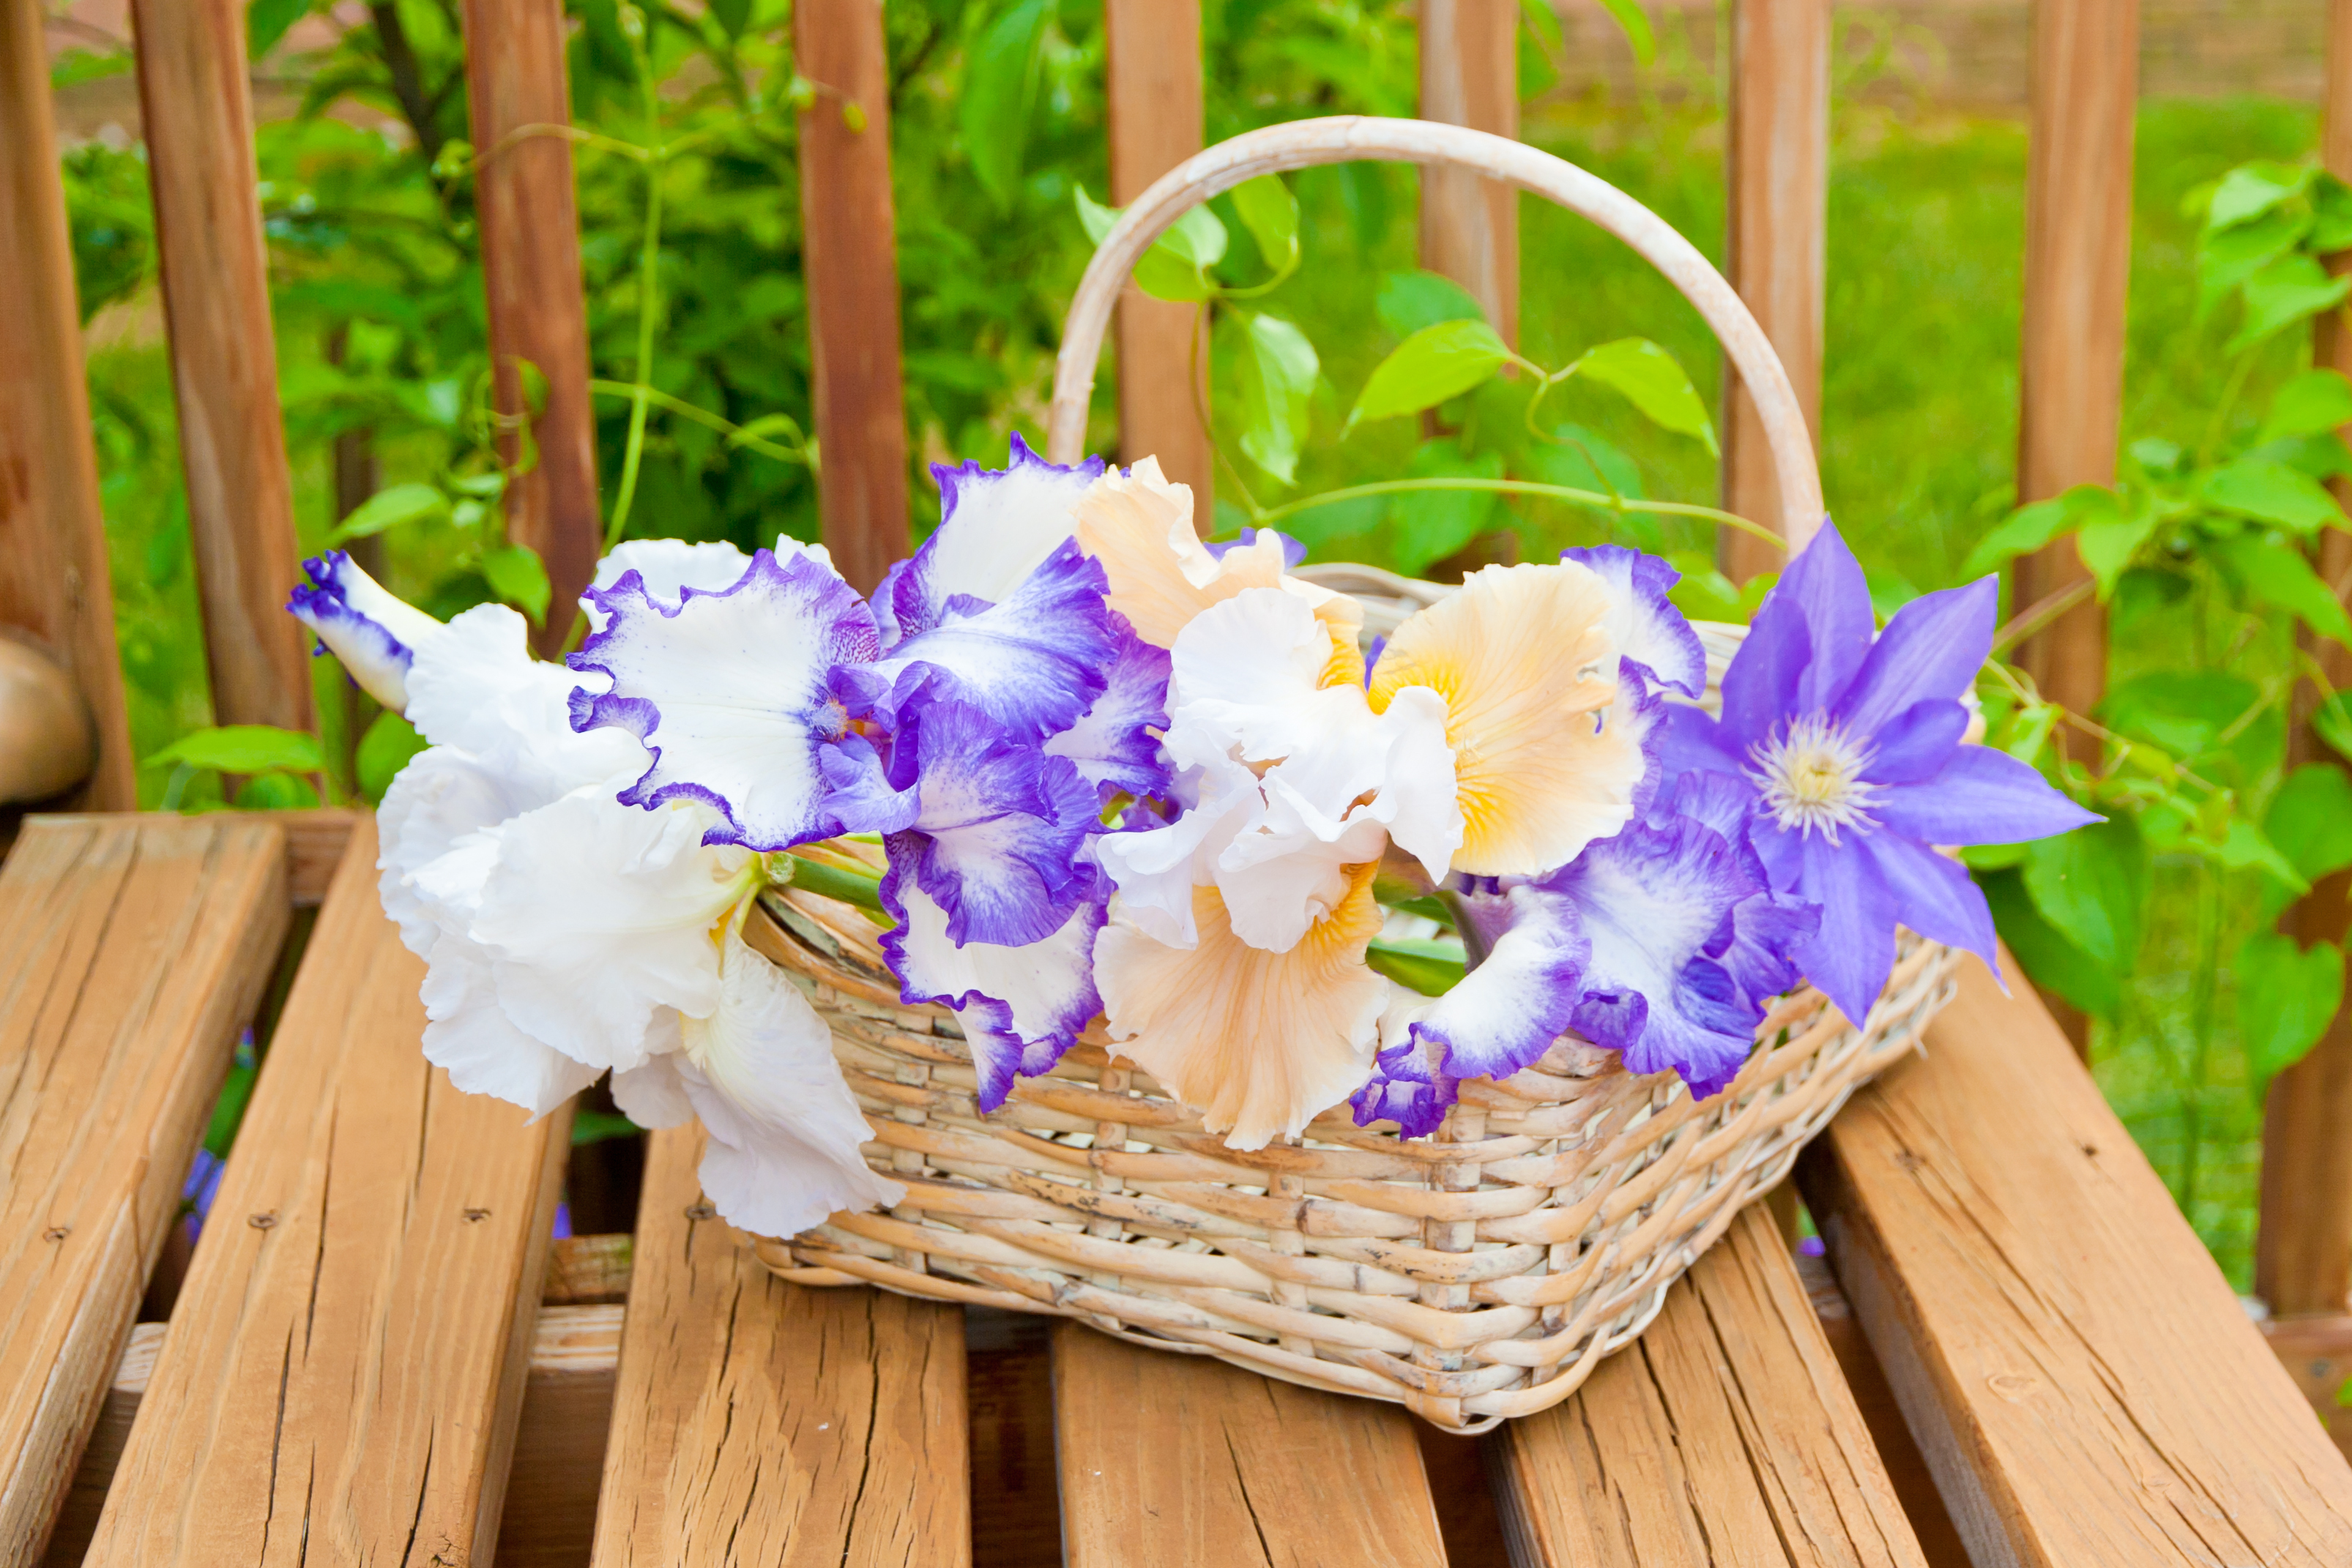 bigstock-Basket-With-Irises-Garden-Flow-489206601.jpg